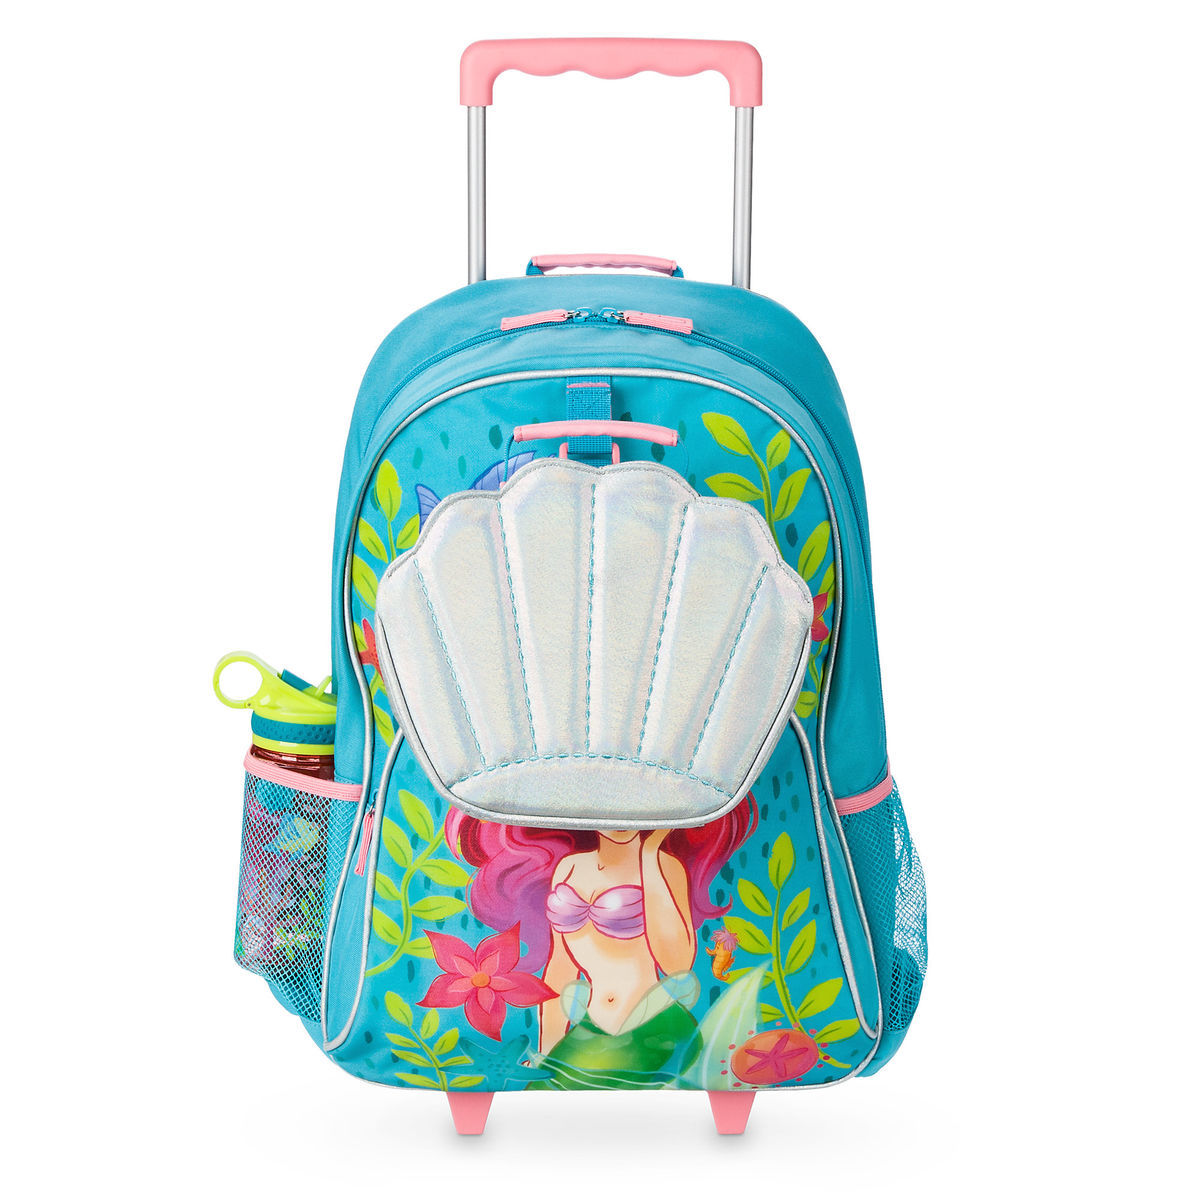 The Little Mermaid Rolling Backpack Personalizable Shopdisney